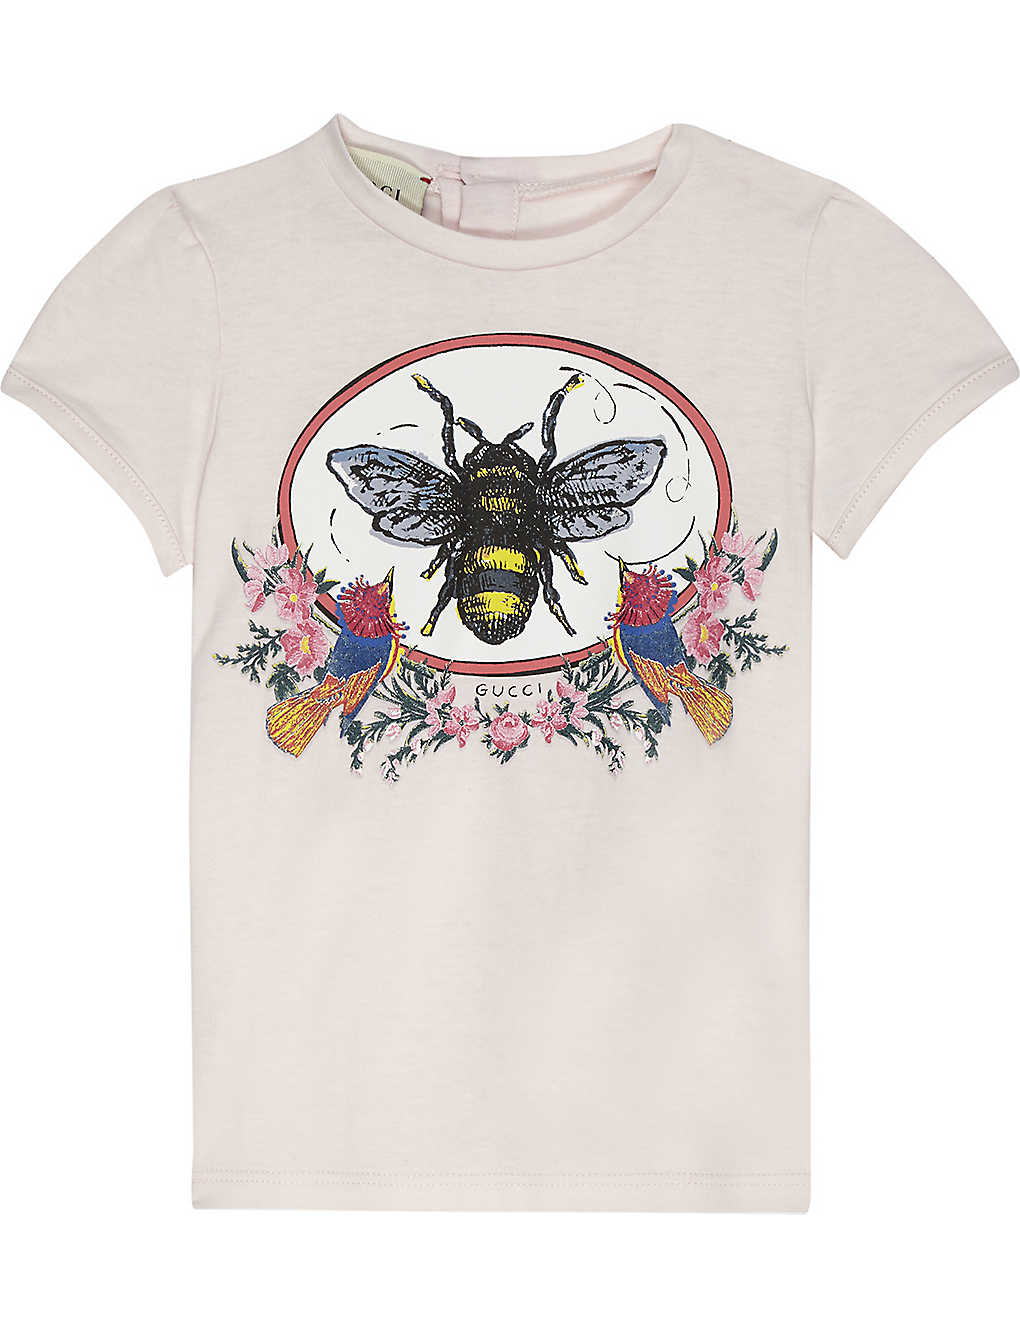 c33667d8f728 GUCCI - Bee print cotton T-shirt 6-36 months | Selfridges.com